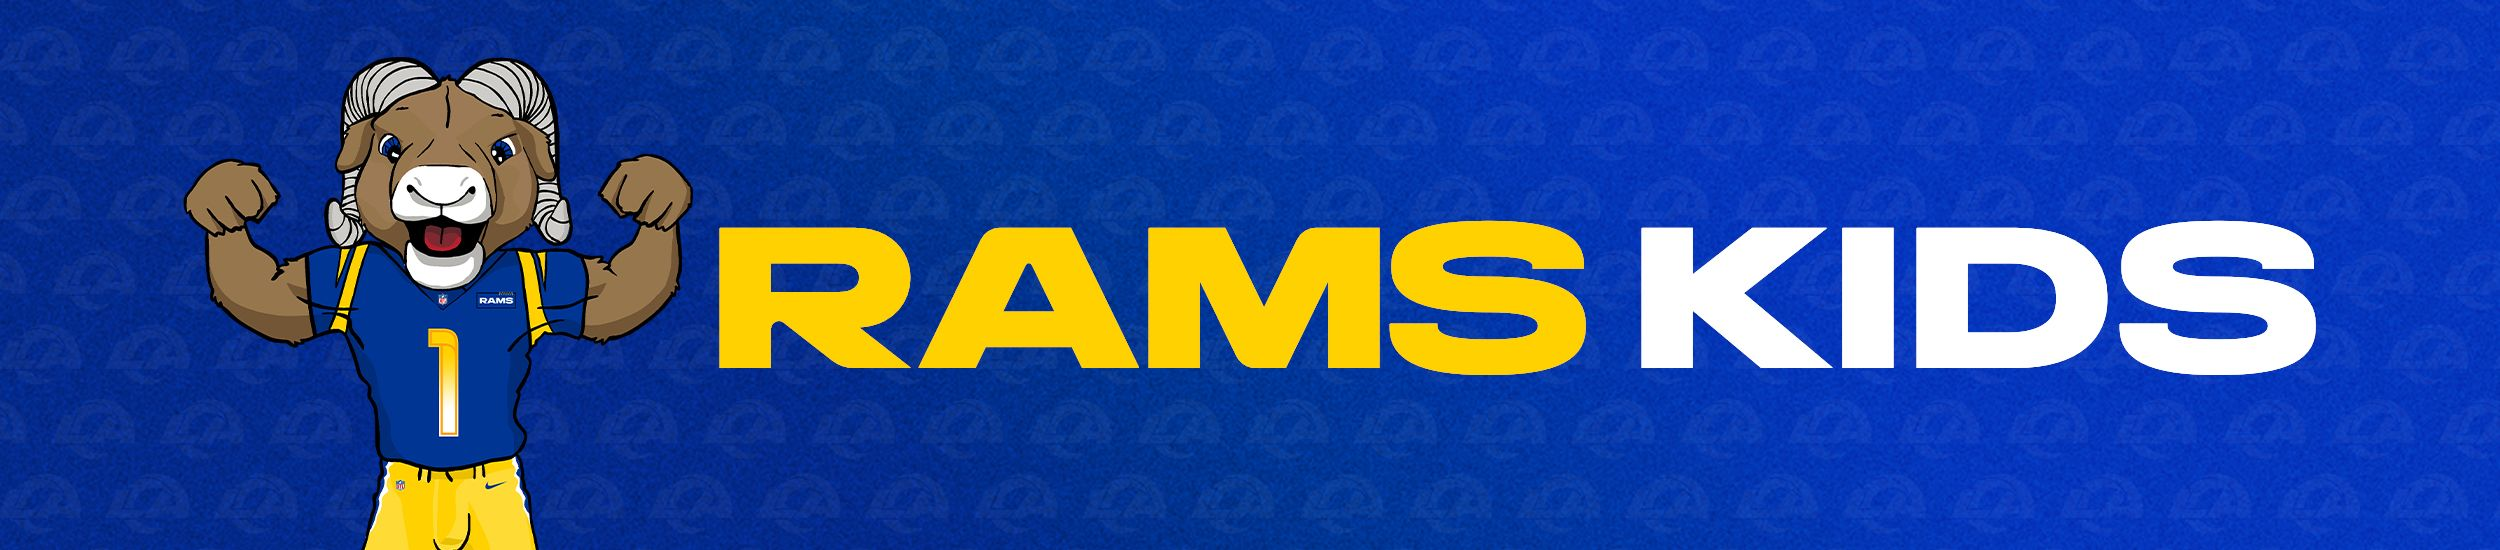 2021-rams-kids-page-header